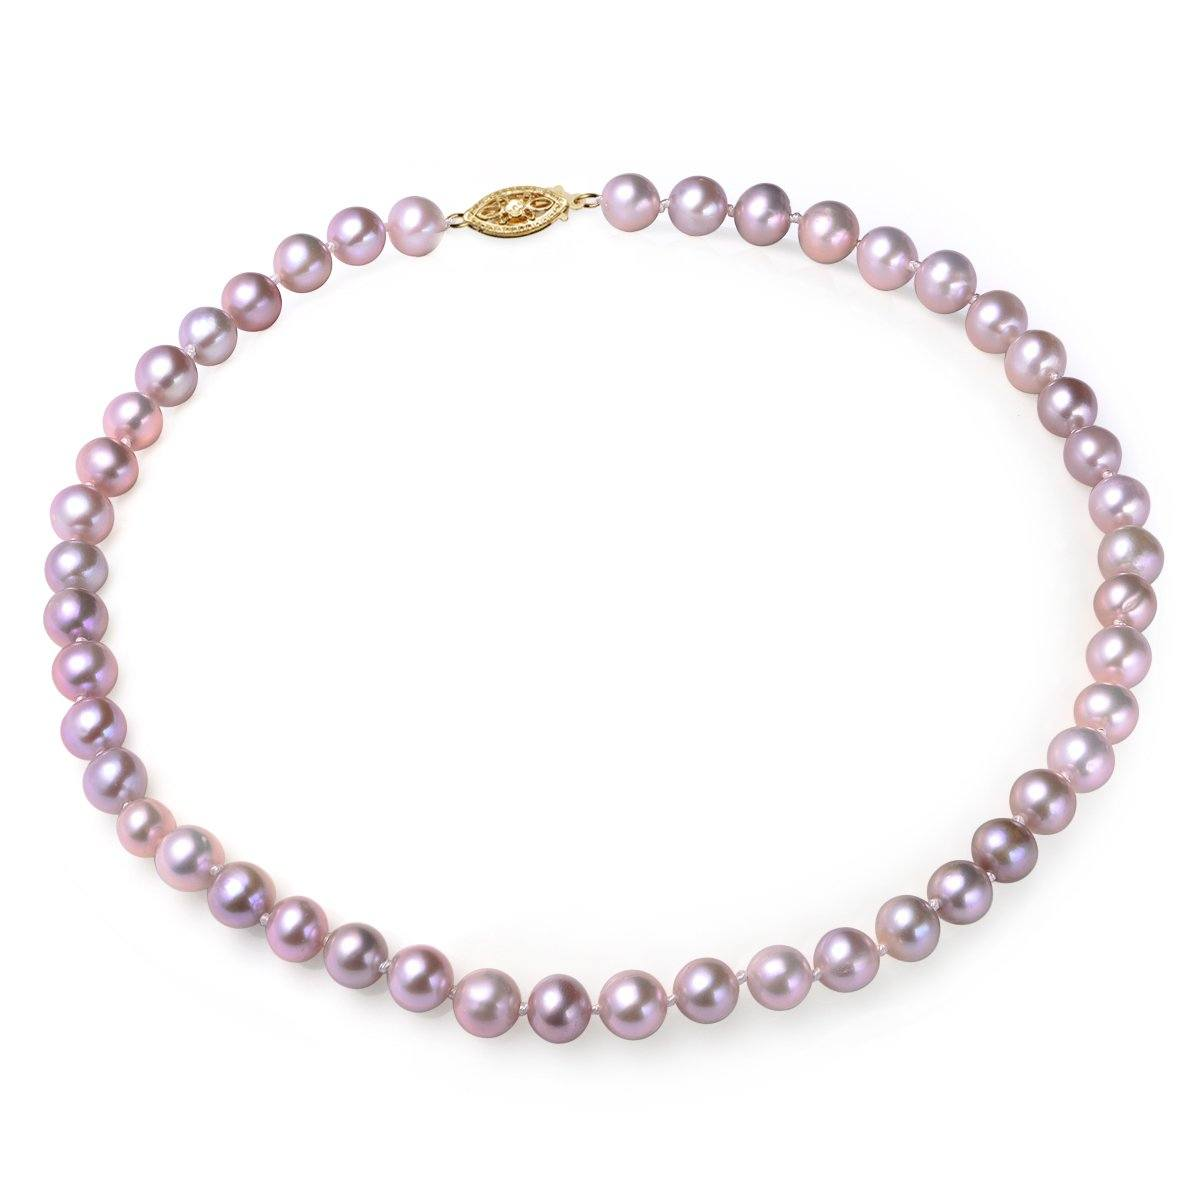 lavender 8-9mm, aa+, cultured freshwater pearl strand necklace with 14k yellow gold filled fish hook